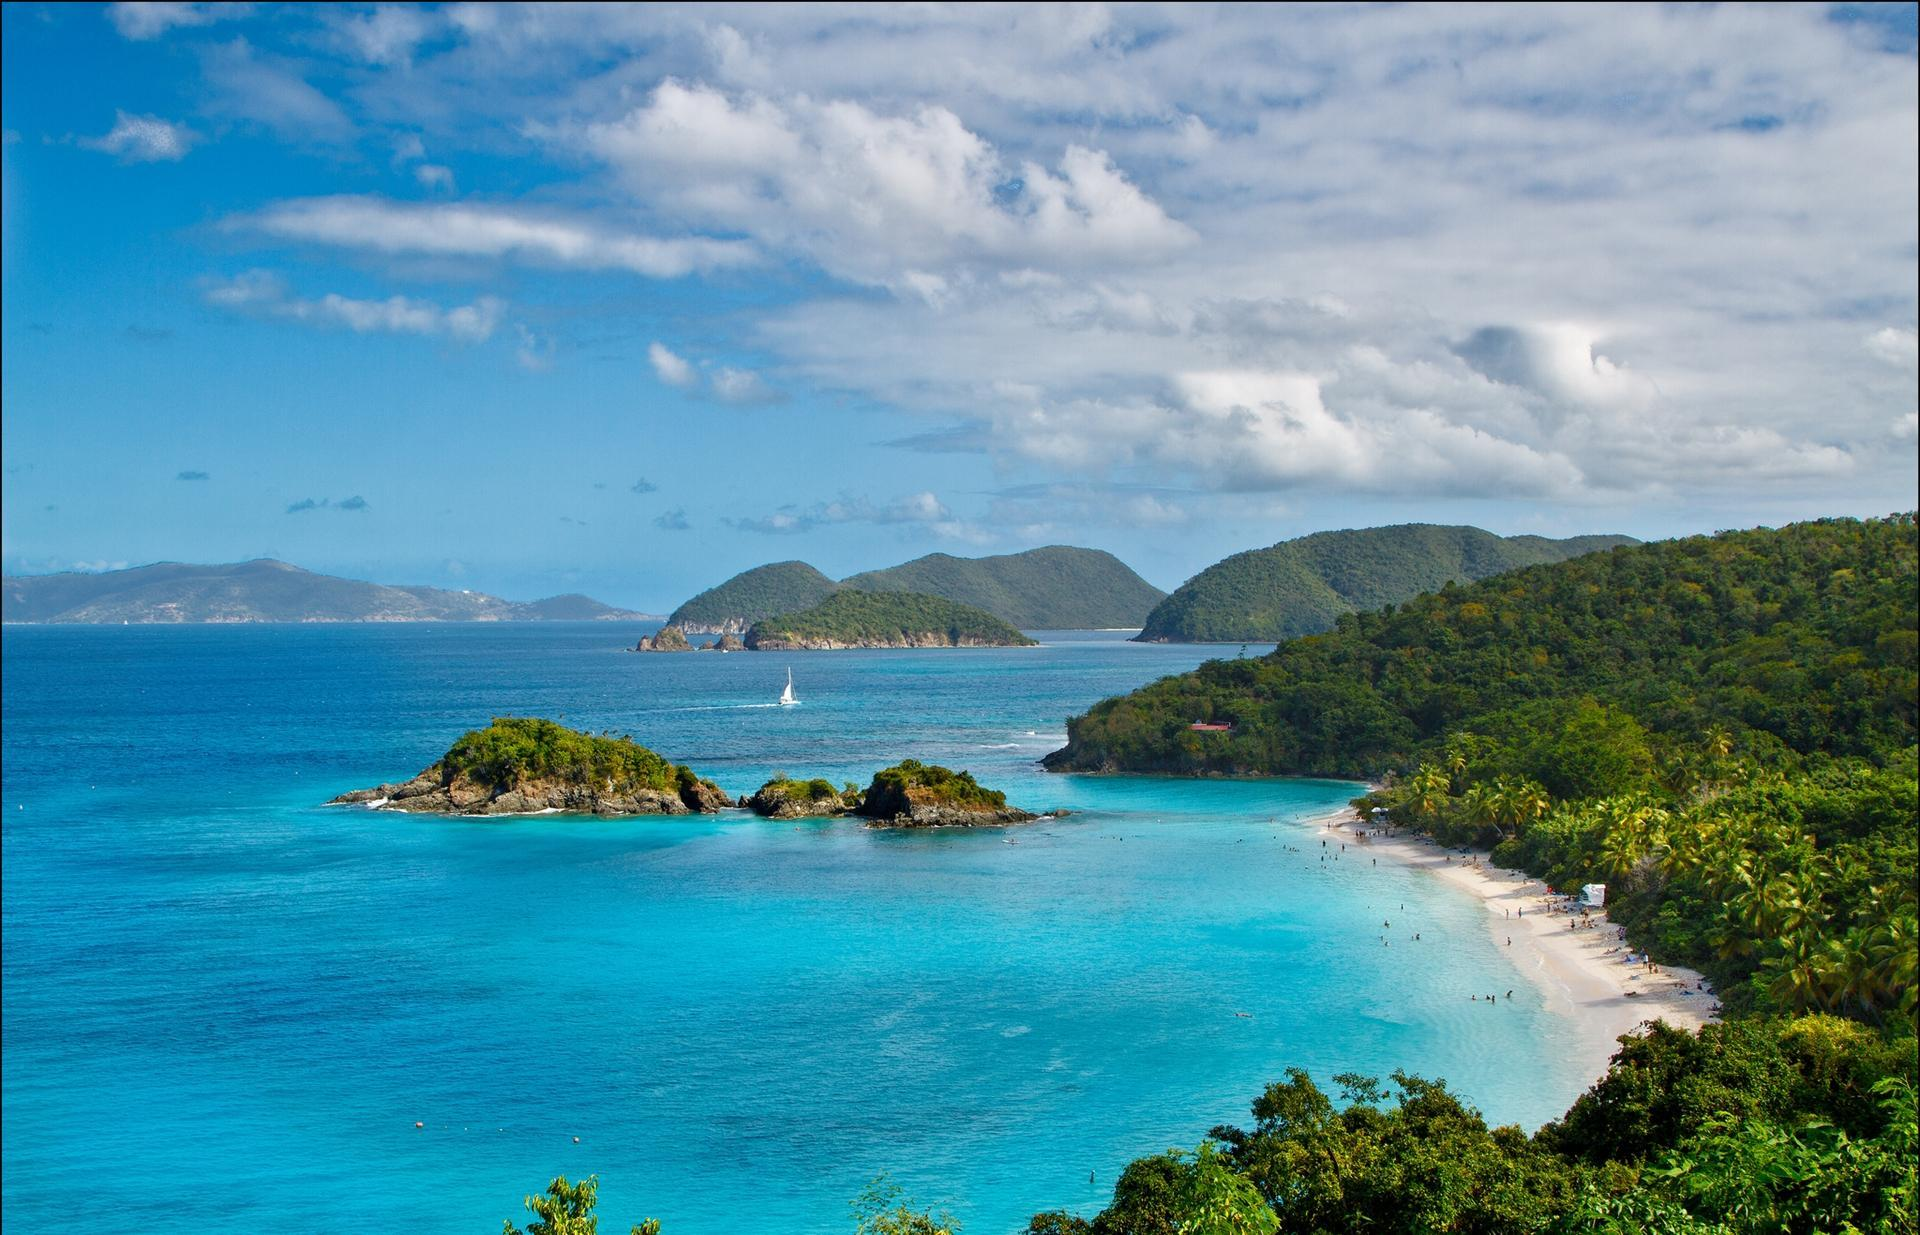 Download 1920x1235 Turquoise Bays On St. John wallpaper